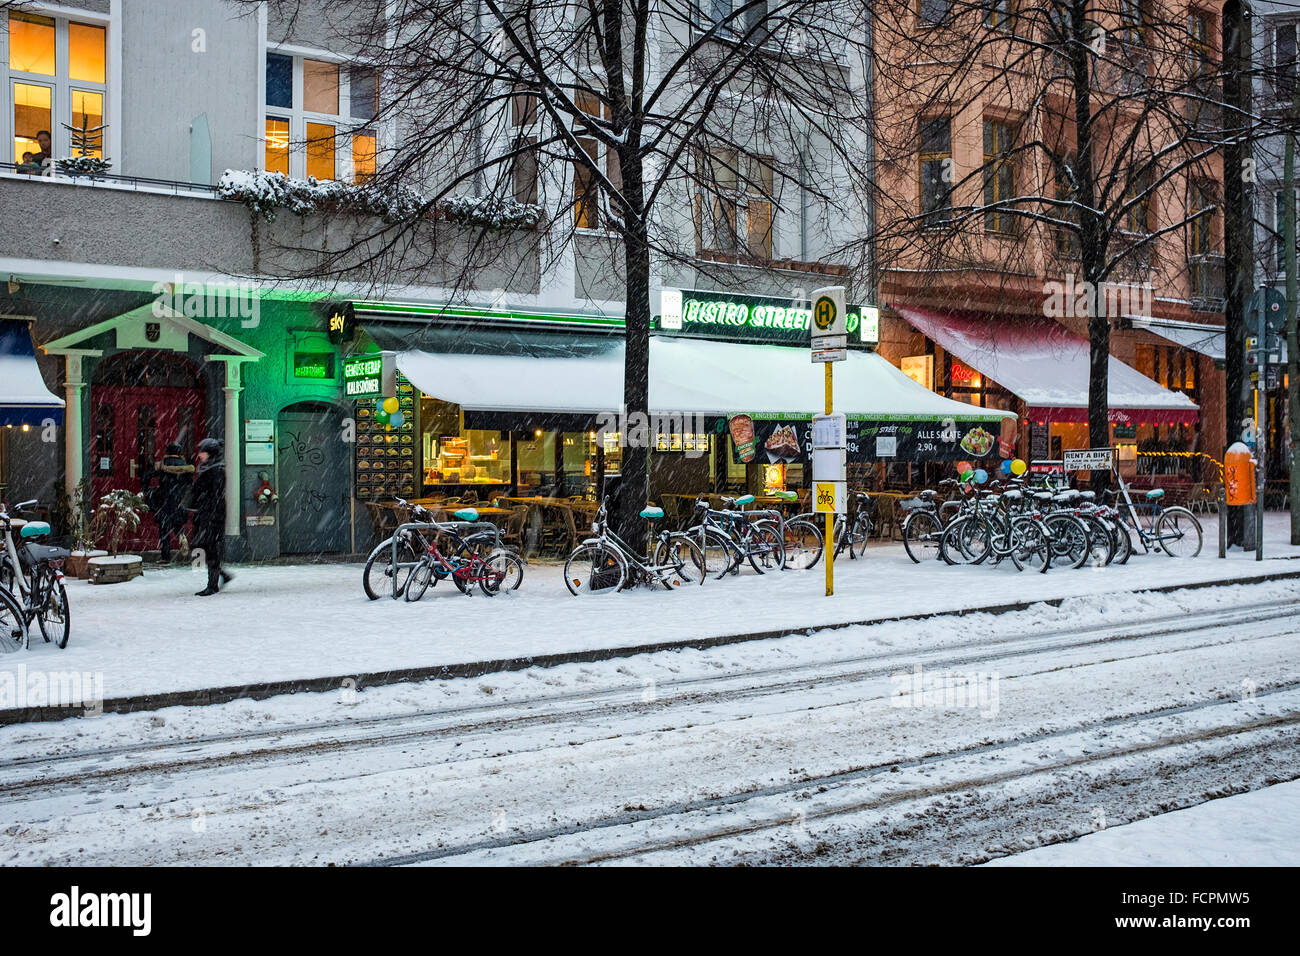 Berlin City Street, Cafe Bistro and tram stop after heavy snow fall in Winter - Stock Image